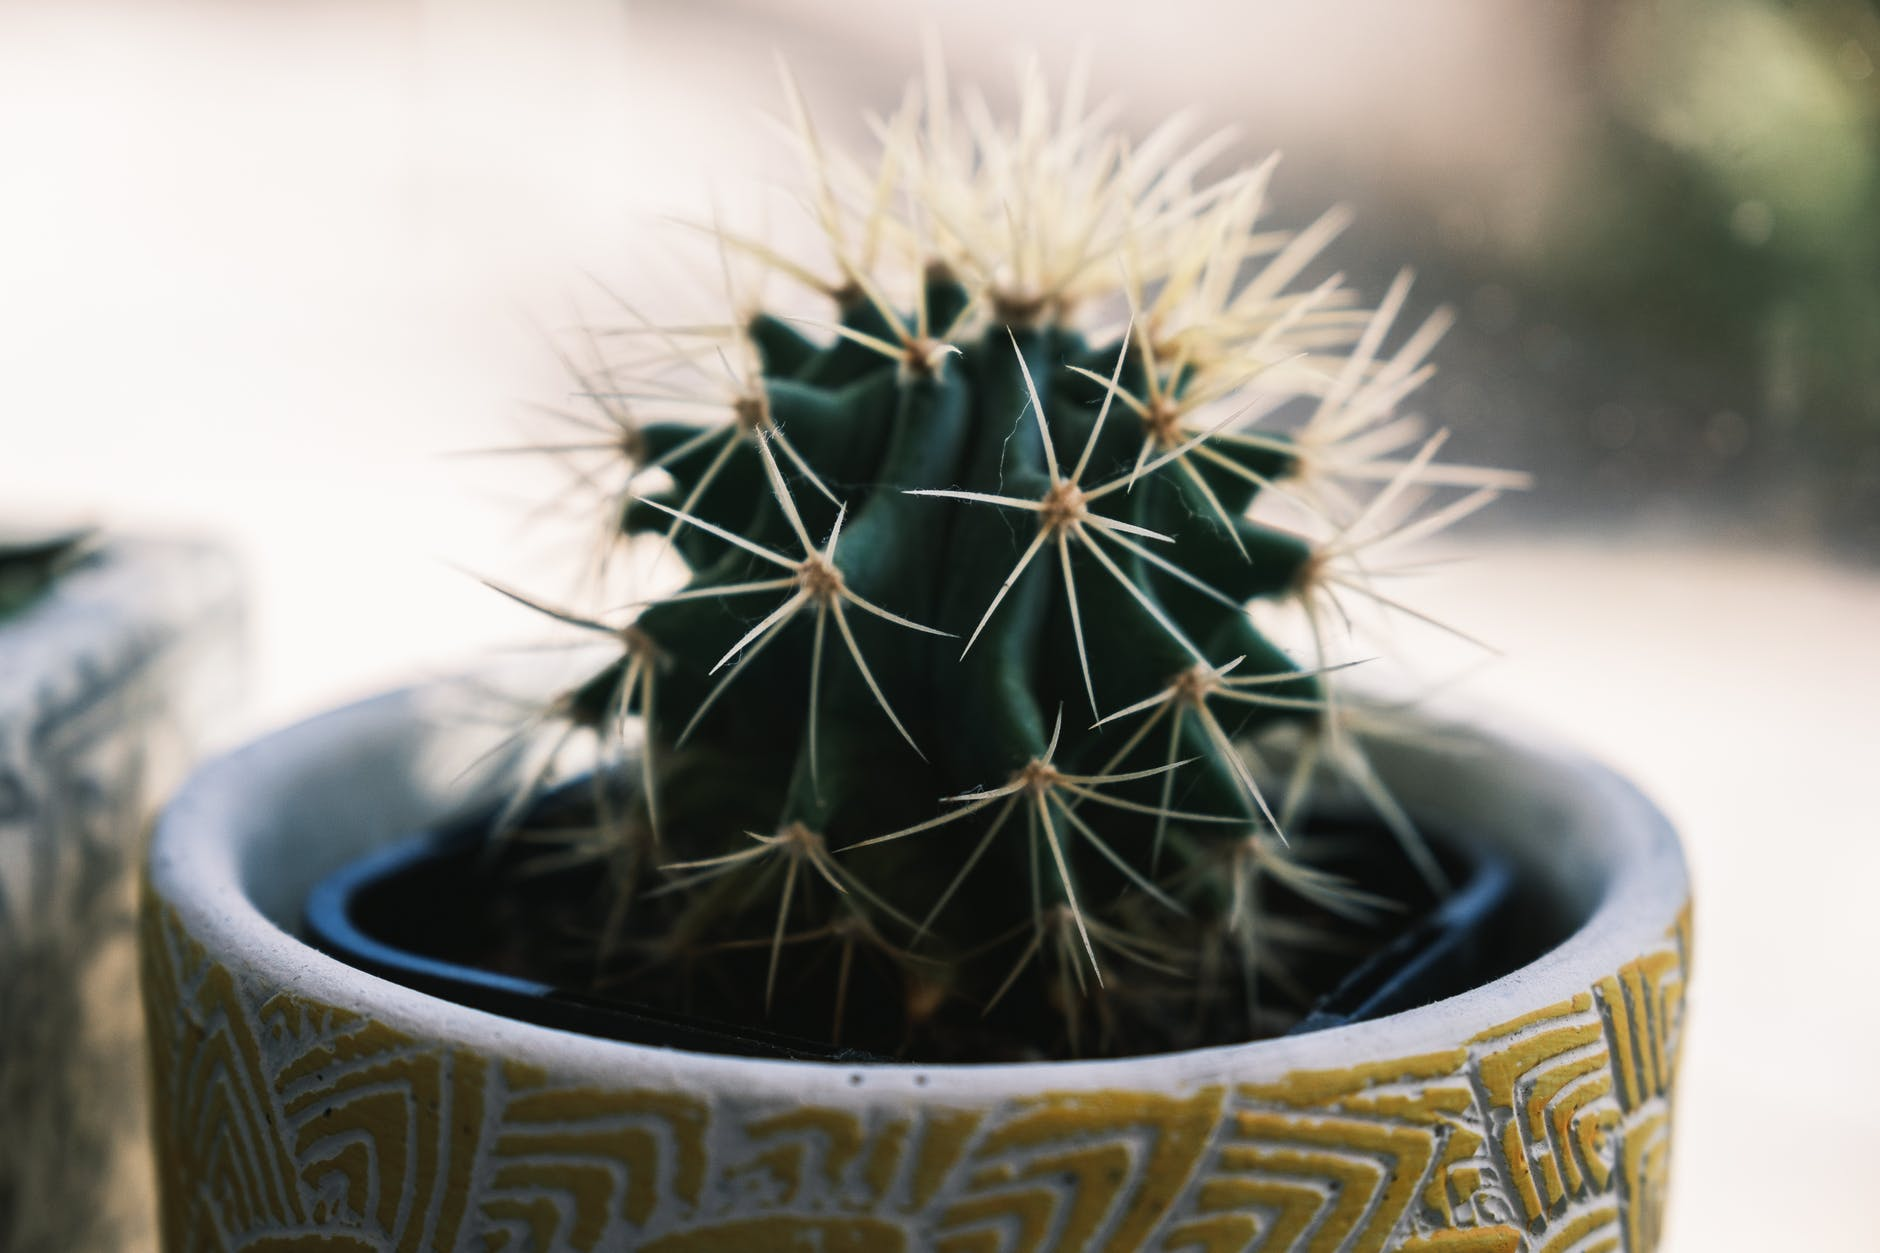 potted cactus in light room